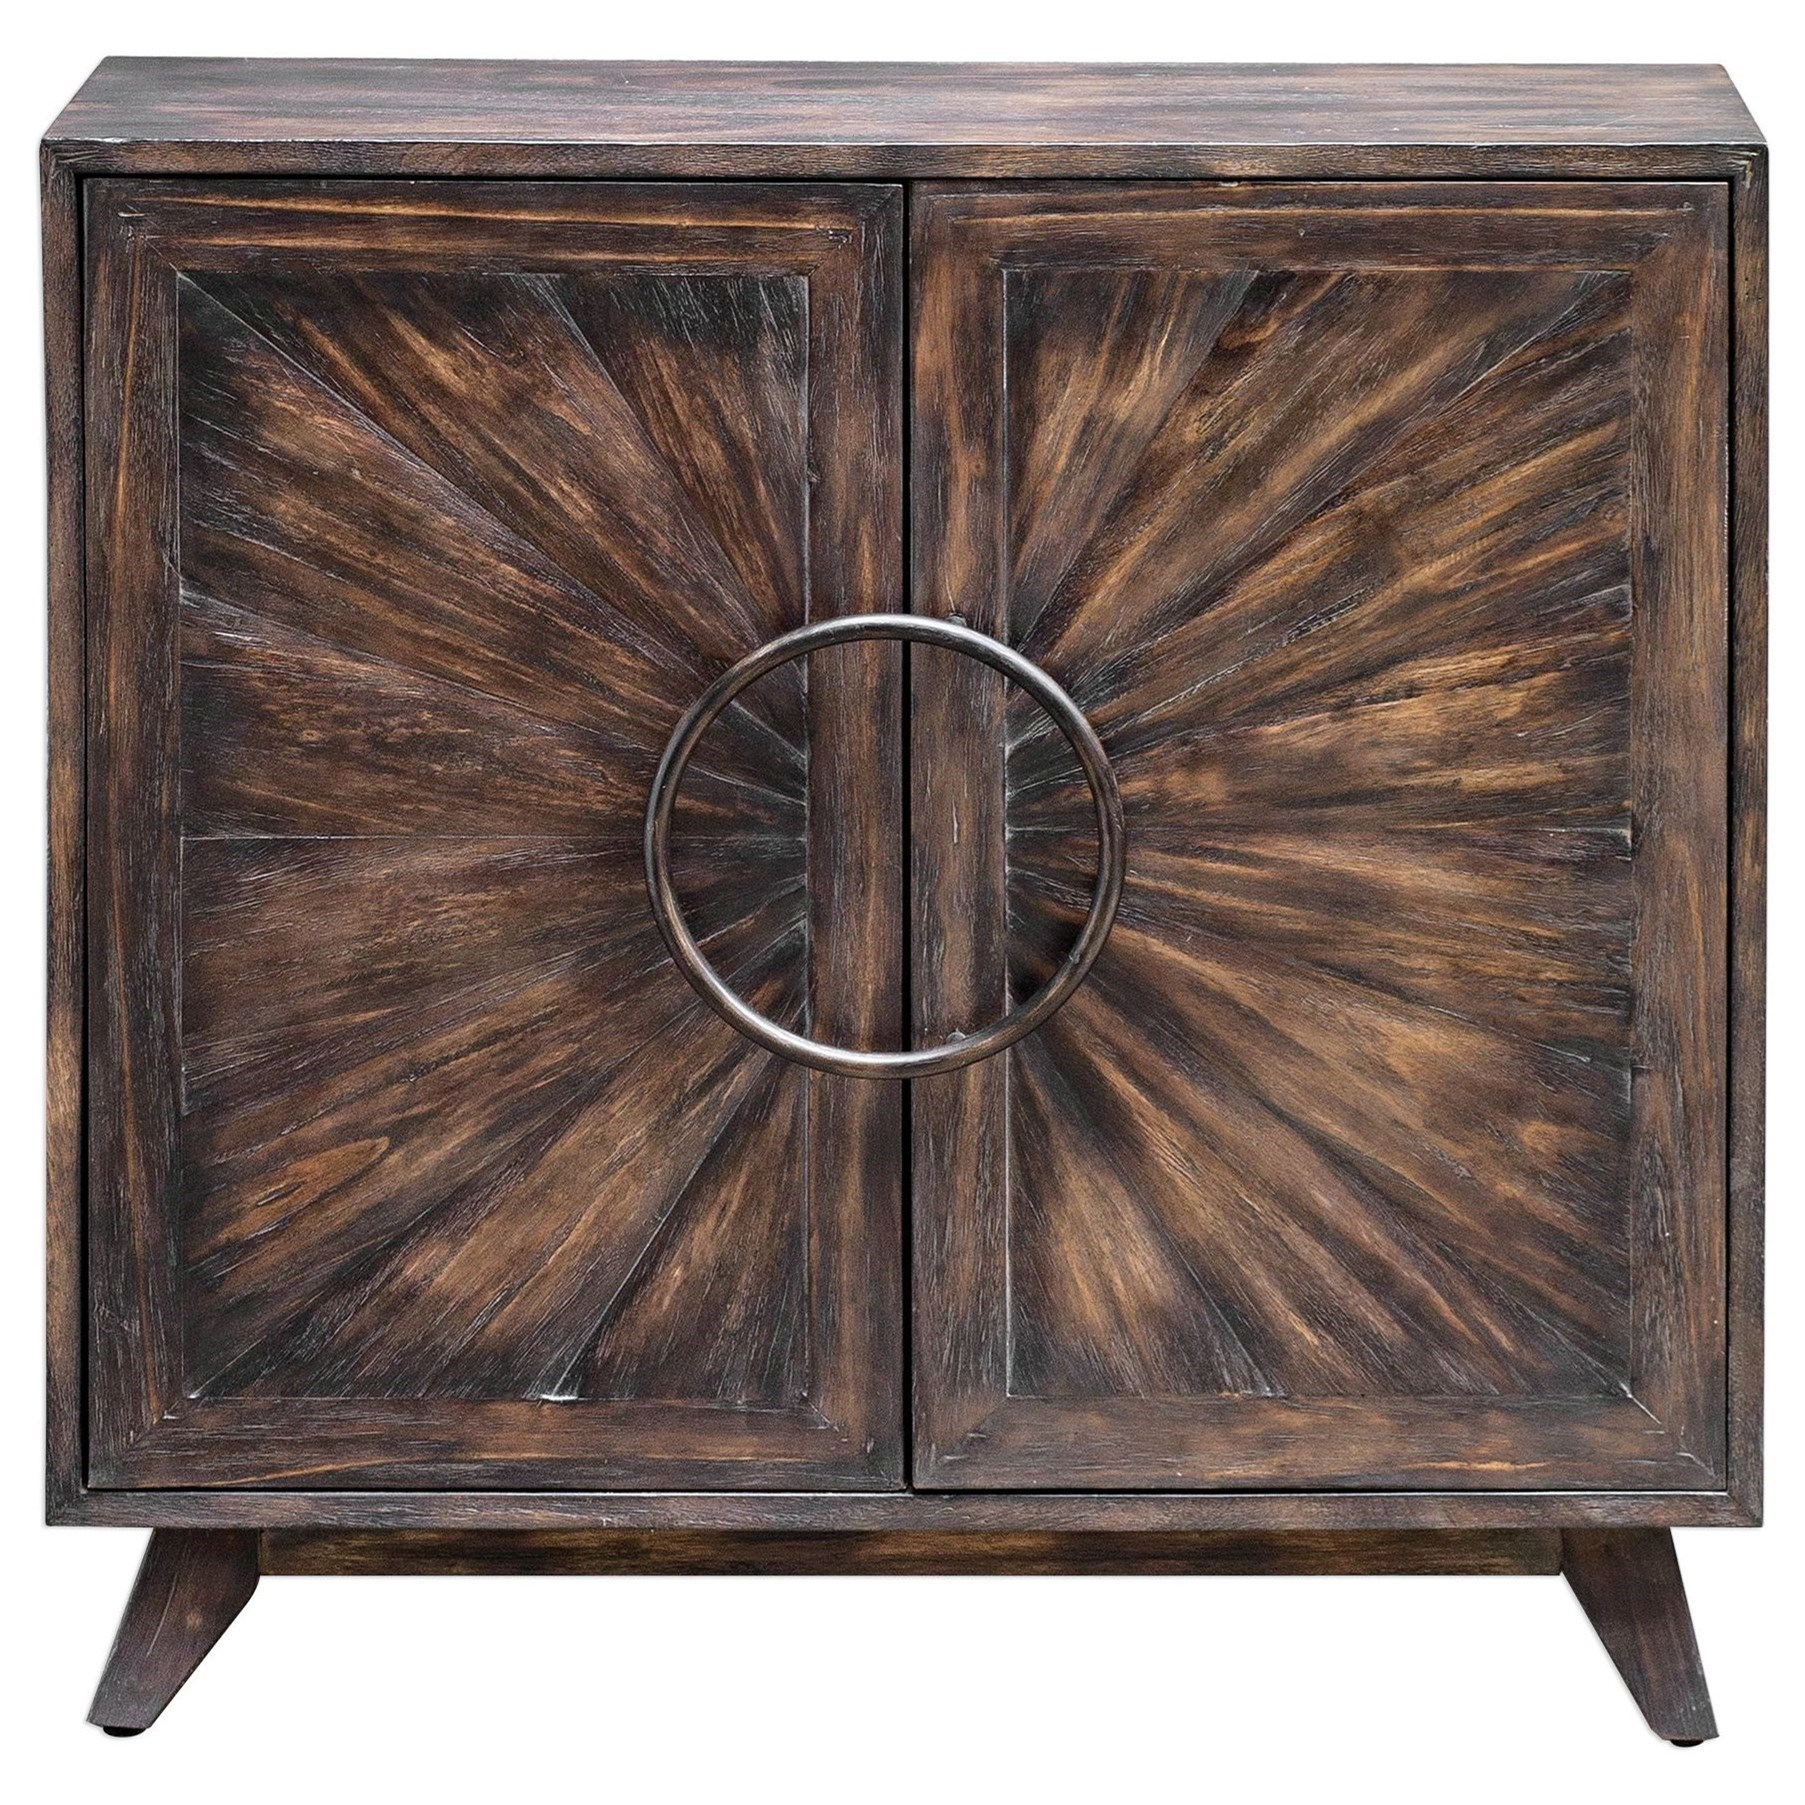 Accent Furniture - Chests Kohana Black Console Cabinet by Uttermost at Suburban Furniture